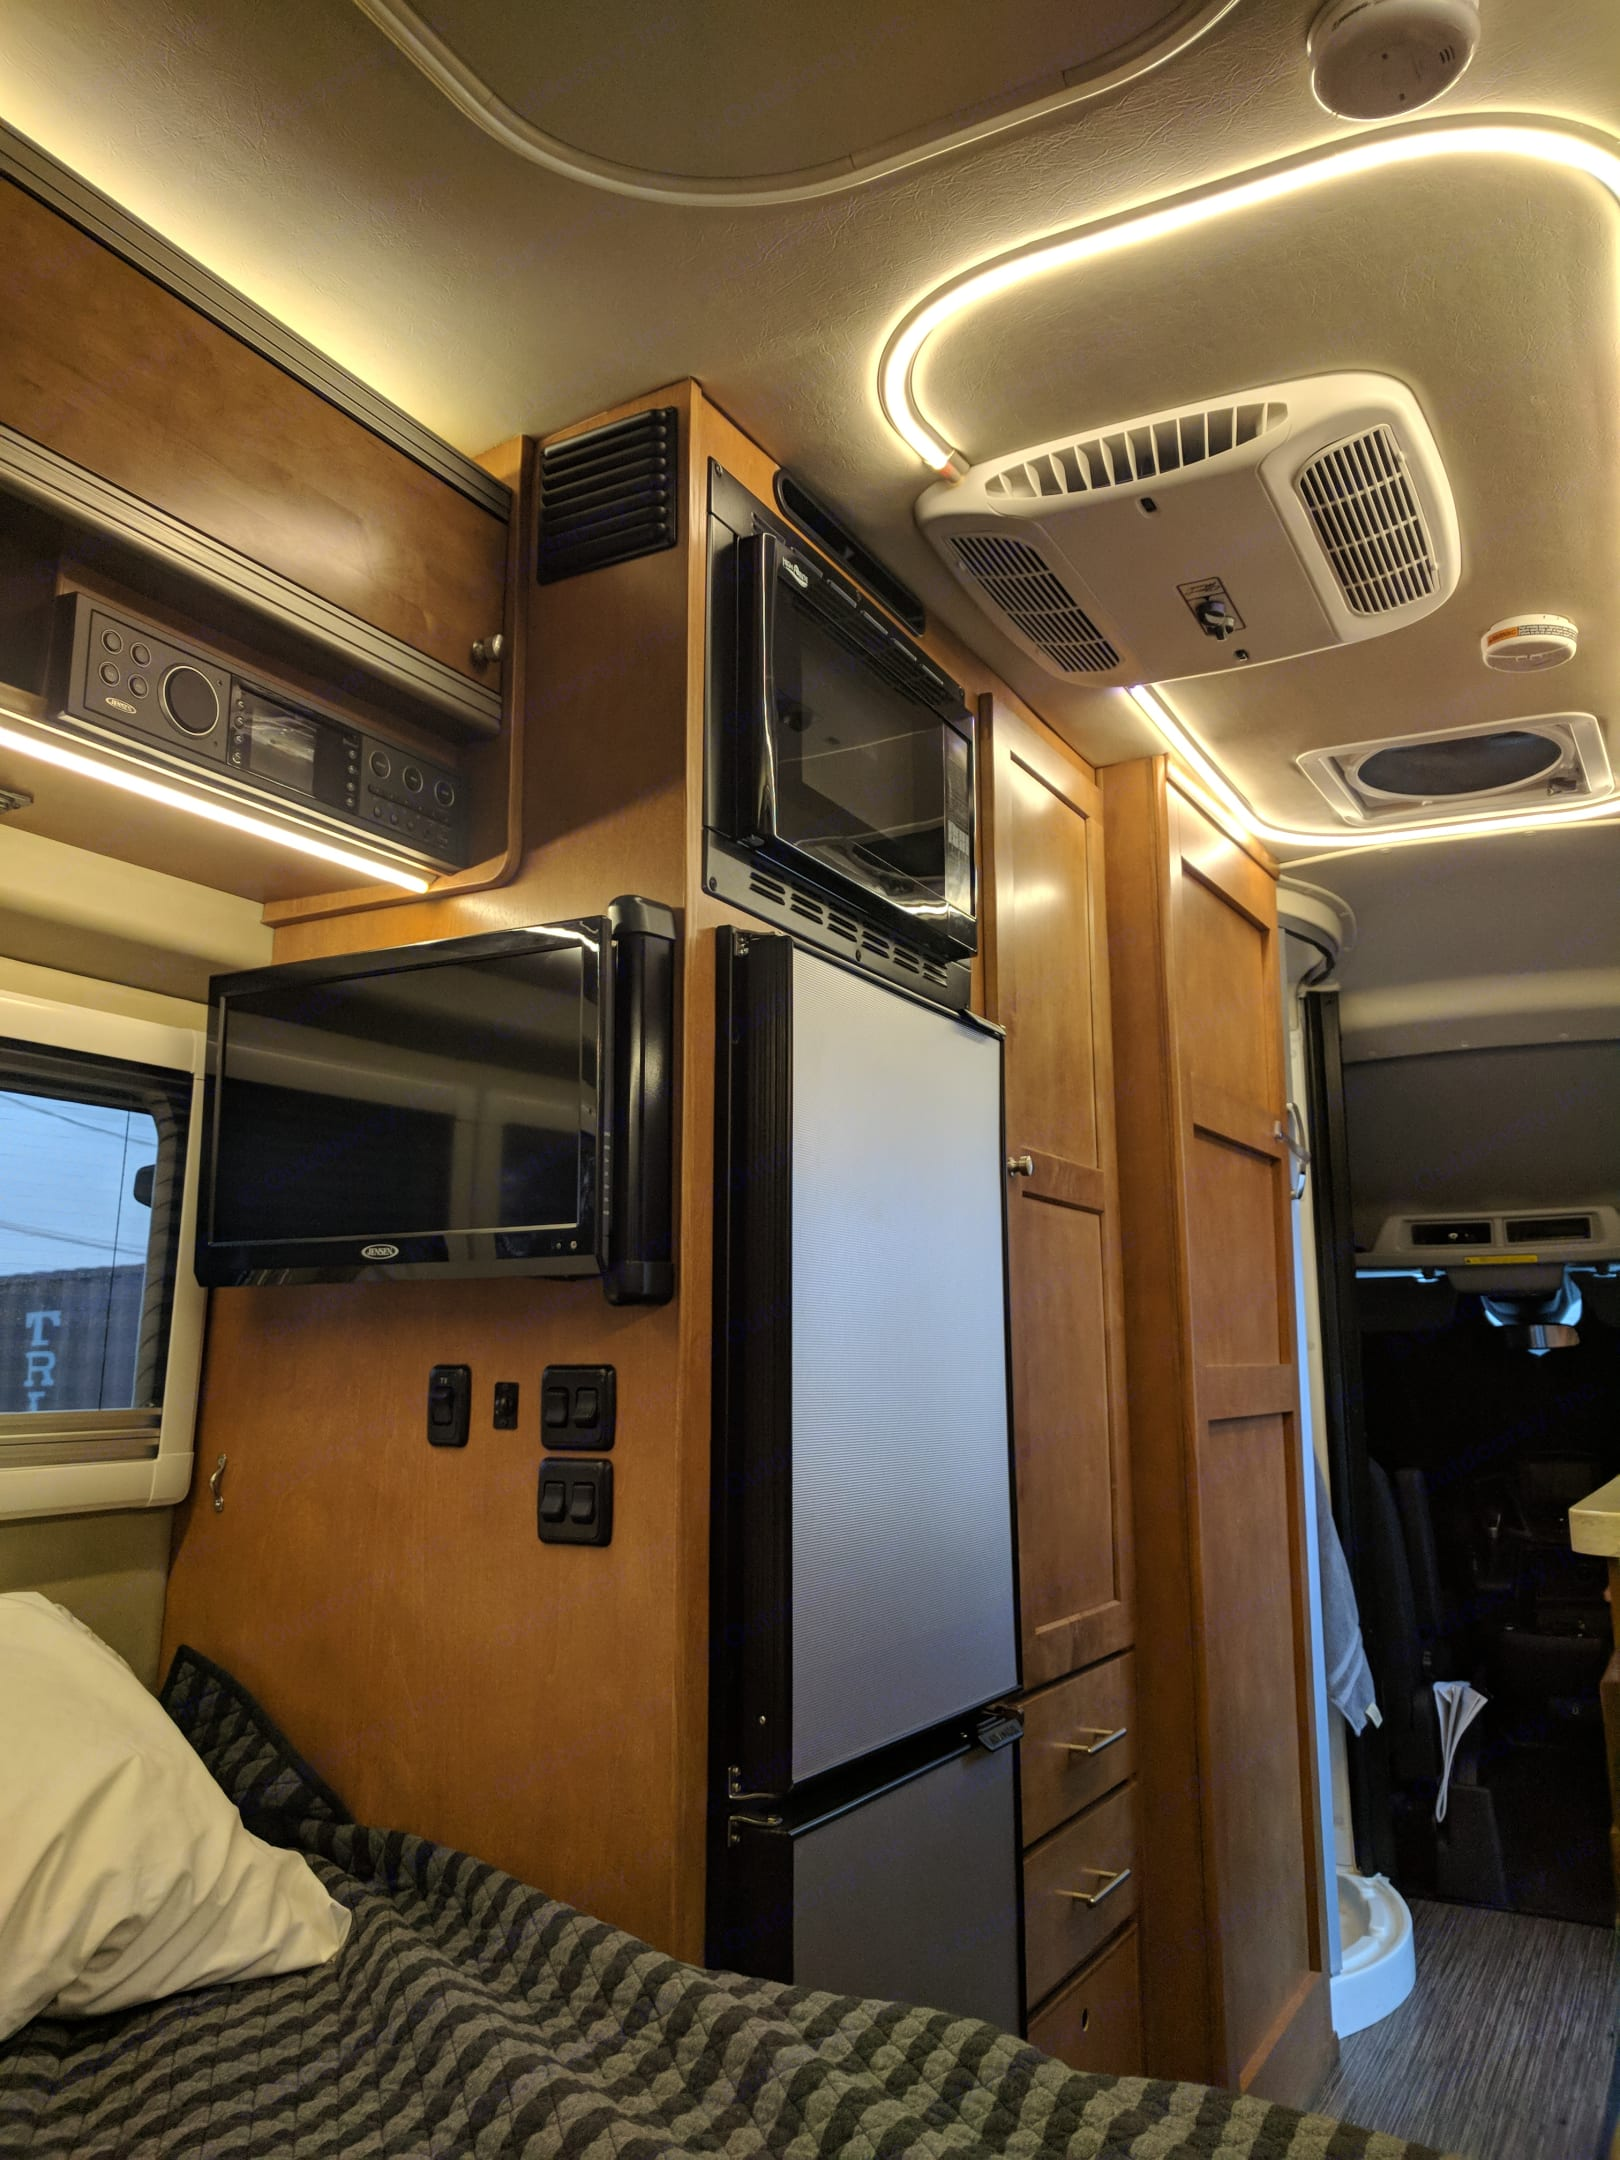 TV, DVD, audio receiver with 2 internal and 2 external speakers, refrigerator and microwave/convection oven. Winnebago Paseo 2018